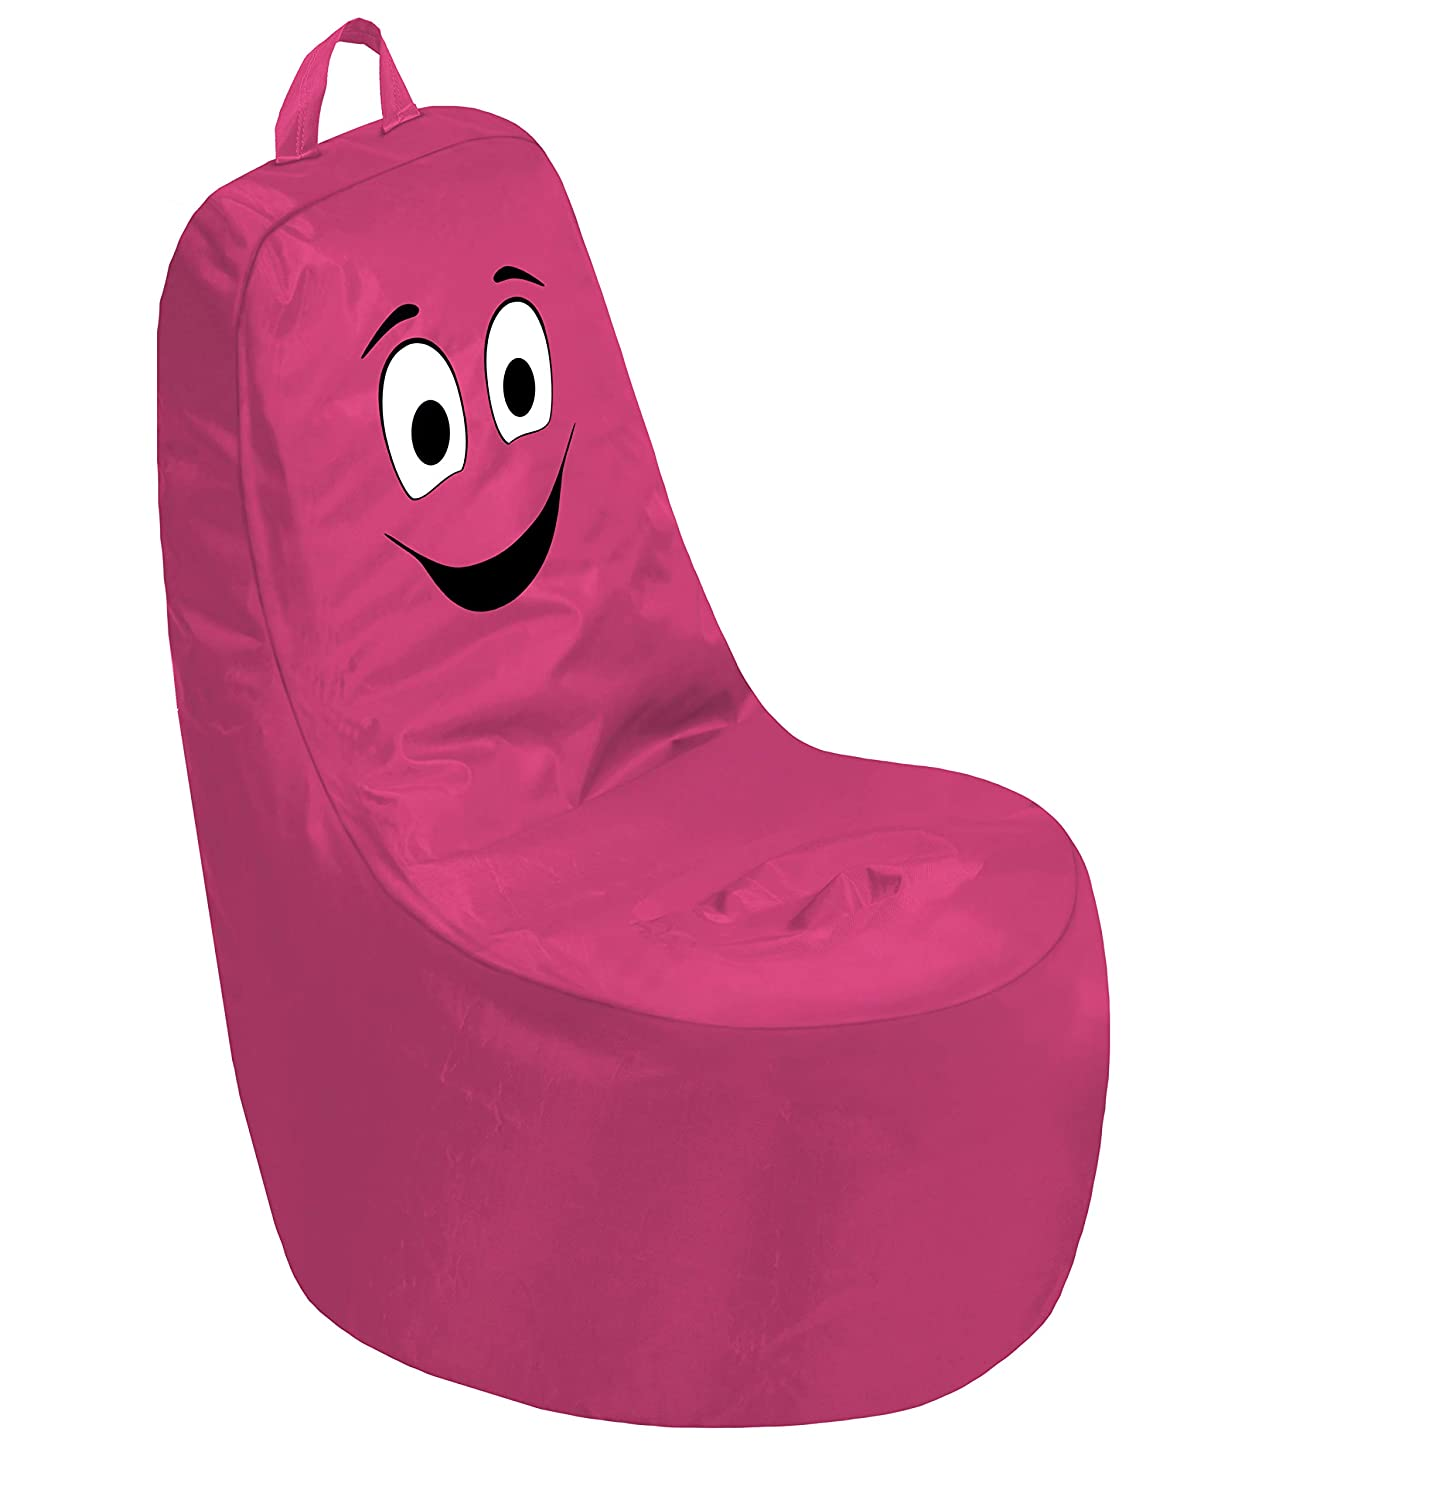 Cali Be Happy Sack Bean Bag Chair, Dirt-Resistant Coated Oxford Fabric, Flexible Seating for Kids, Teens, Adults, Furniture for Bedrooms, Dorm Rooms, Classrooms - Raspberry